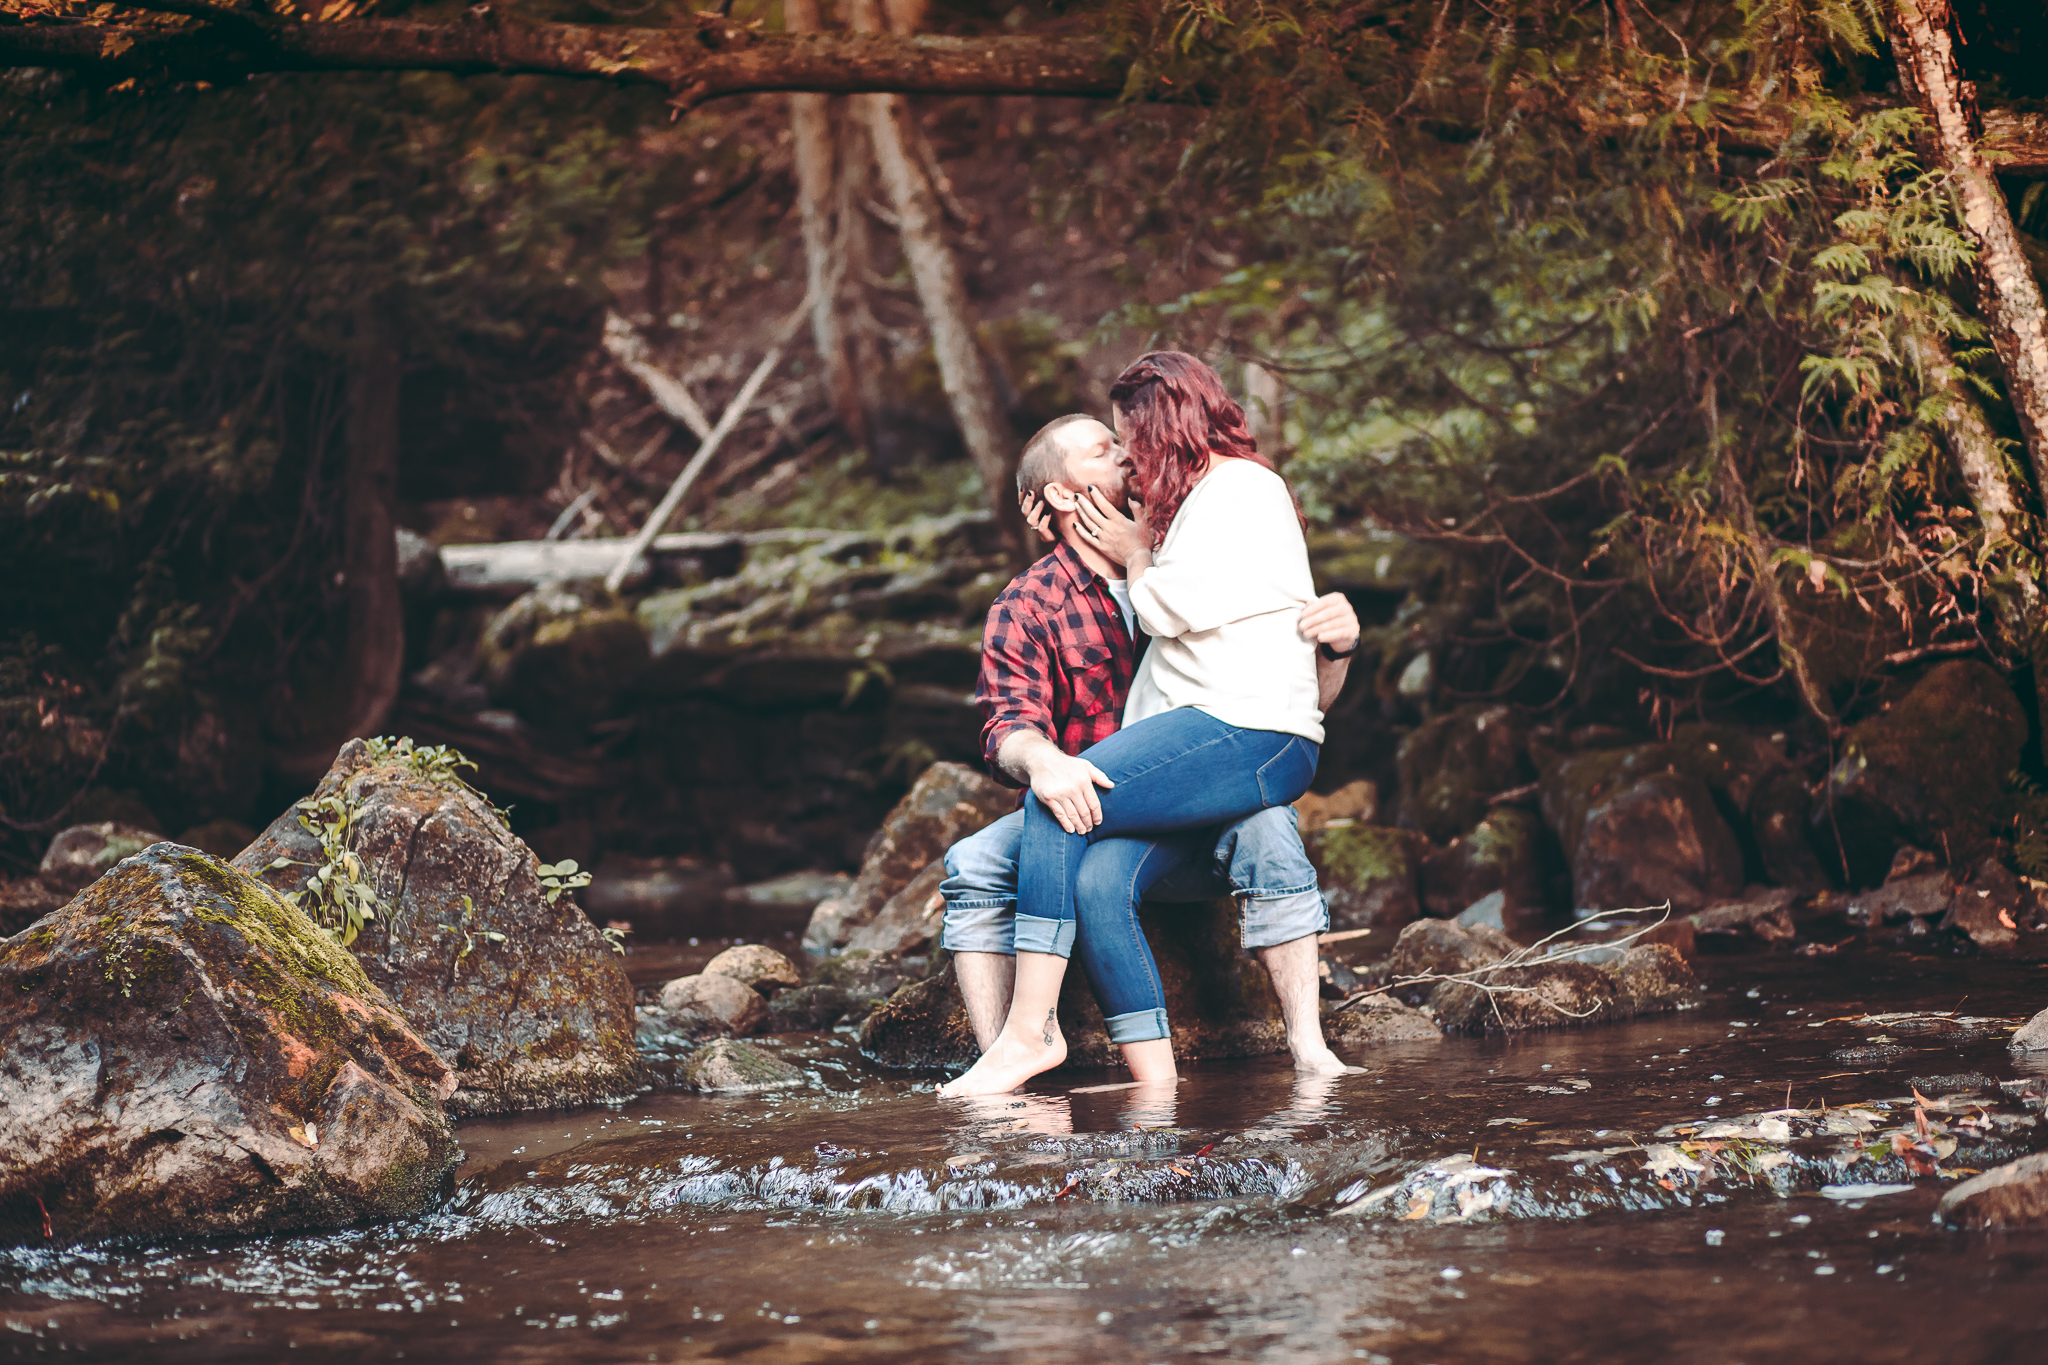 Amy D Photography- Barrie Wedding Photography- Engagement Session- Fall Engagement- Engagement Poses- Barrie Weddings- Wedding Photographer-89.jpg